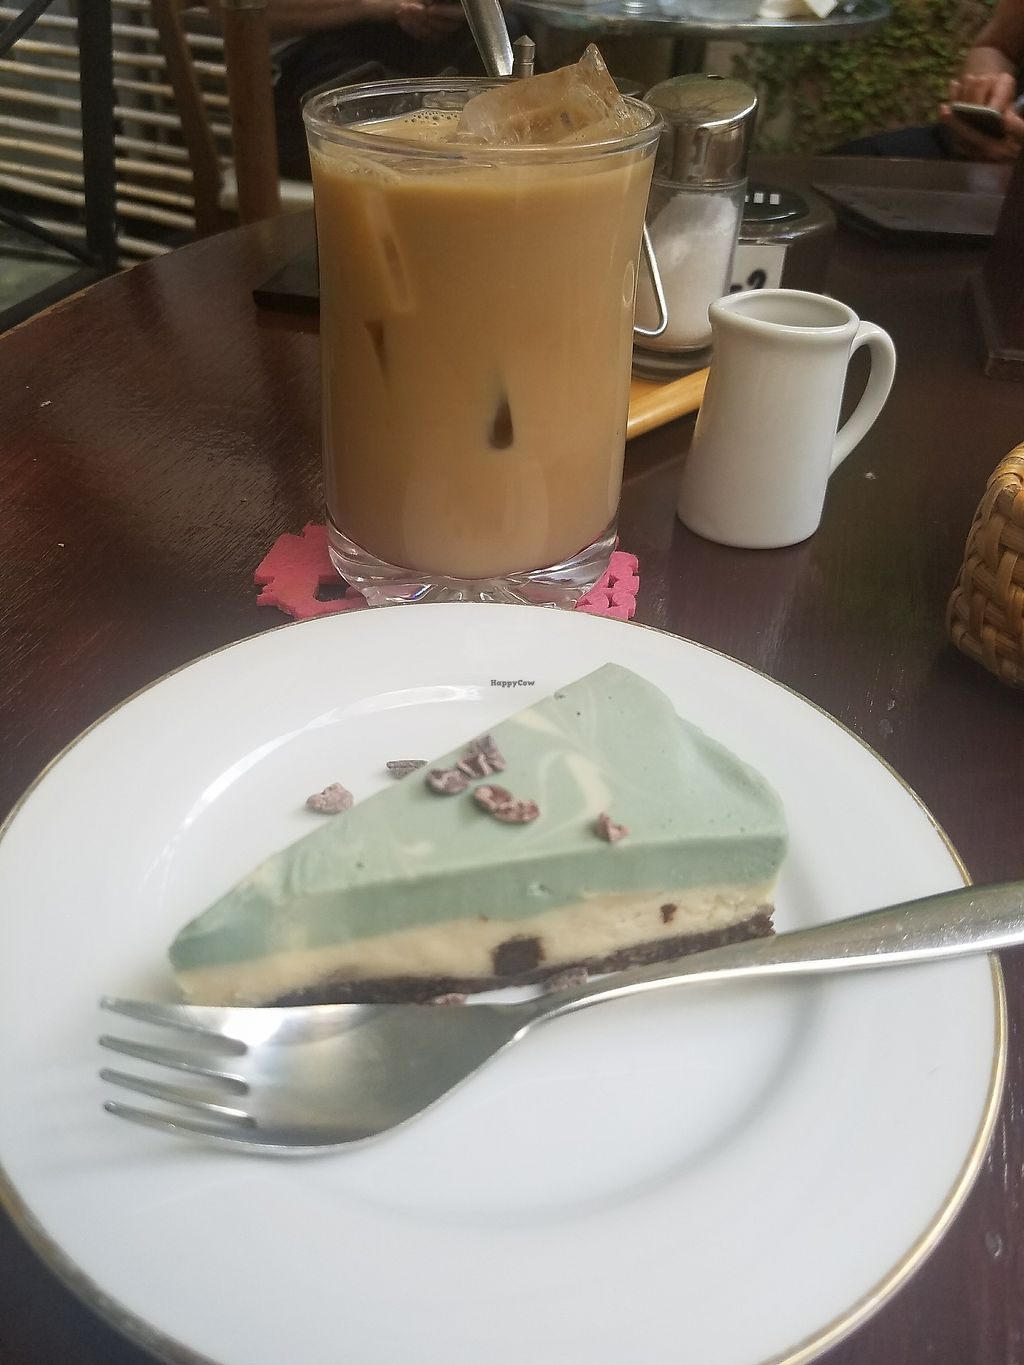 """Photo of Falafel Garden  by <a href=""""/members/profile/ReiAmber"""">ReiAmber</a> <br/>iced coffee with soymilk and mint chocolate raw cake  <br/> May 8, 2018  - <a href='/contact/abuse/image/26257/396924'>Report</a>"""